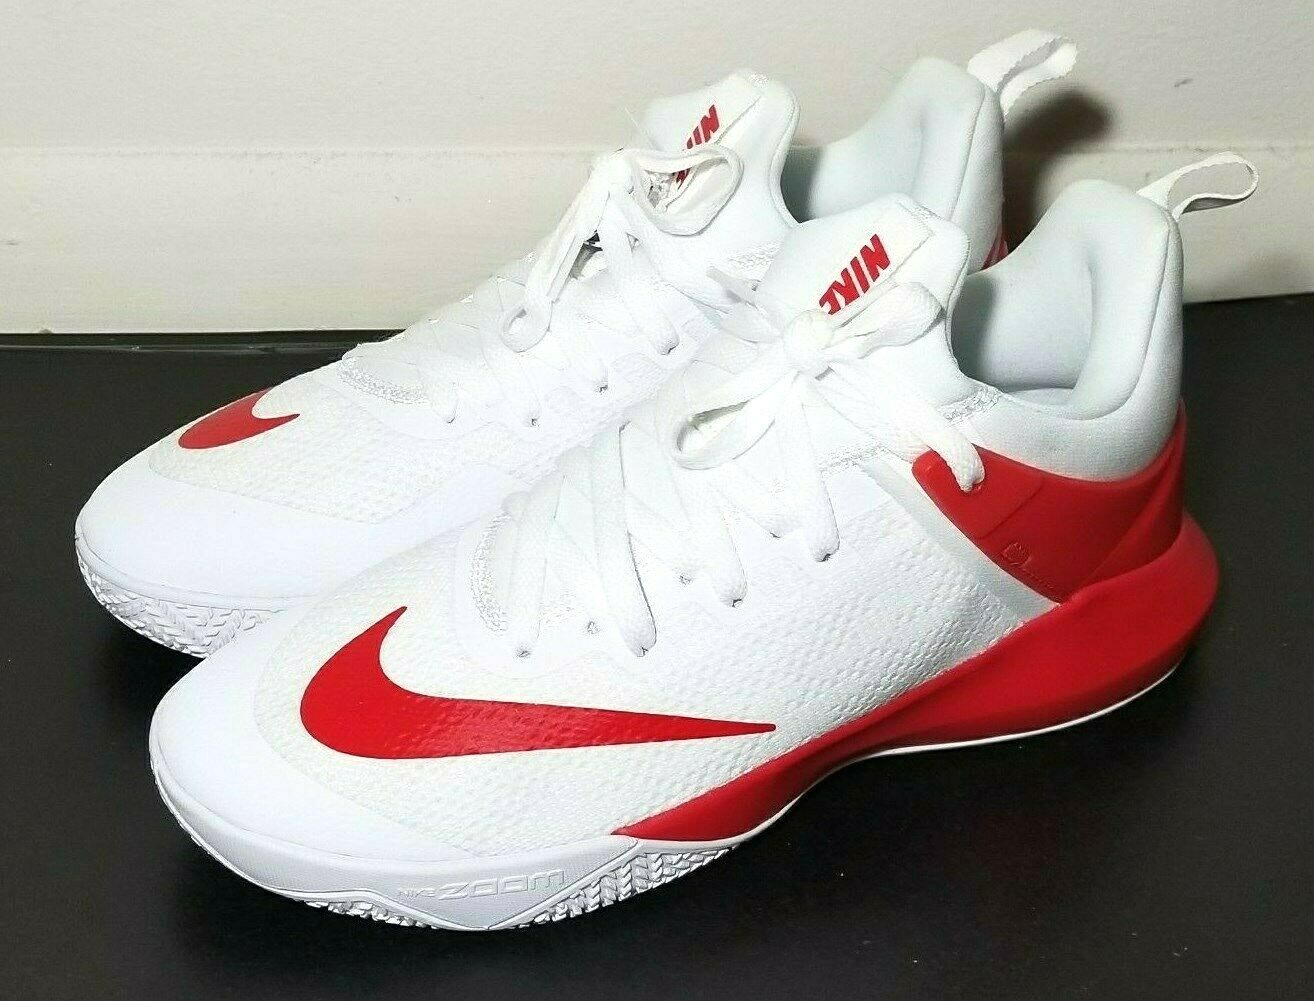 Nike Mens Zoom Shift TB Basketball shoes White Red Size 9.5 New 942802-102